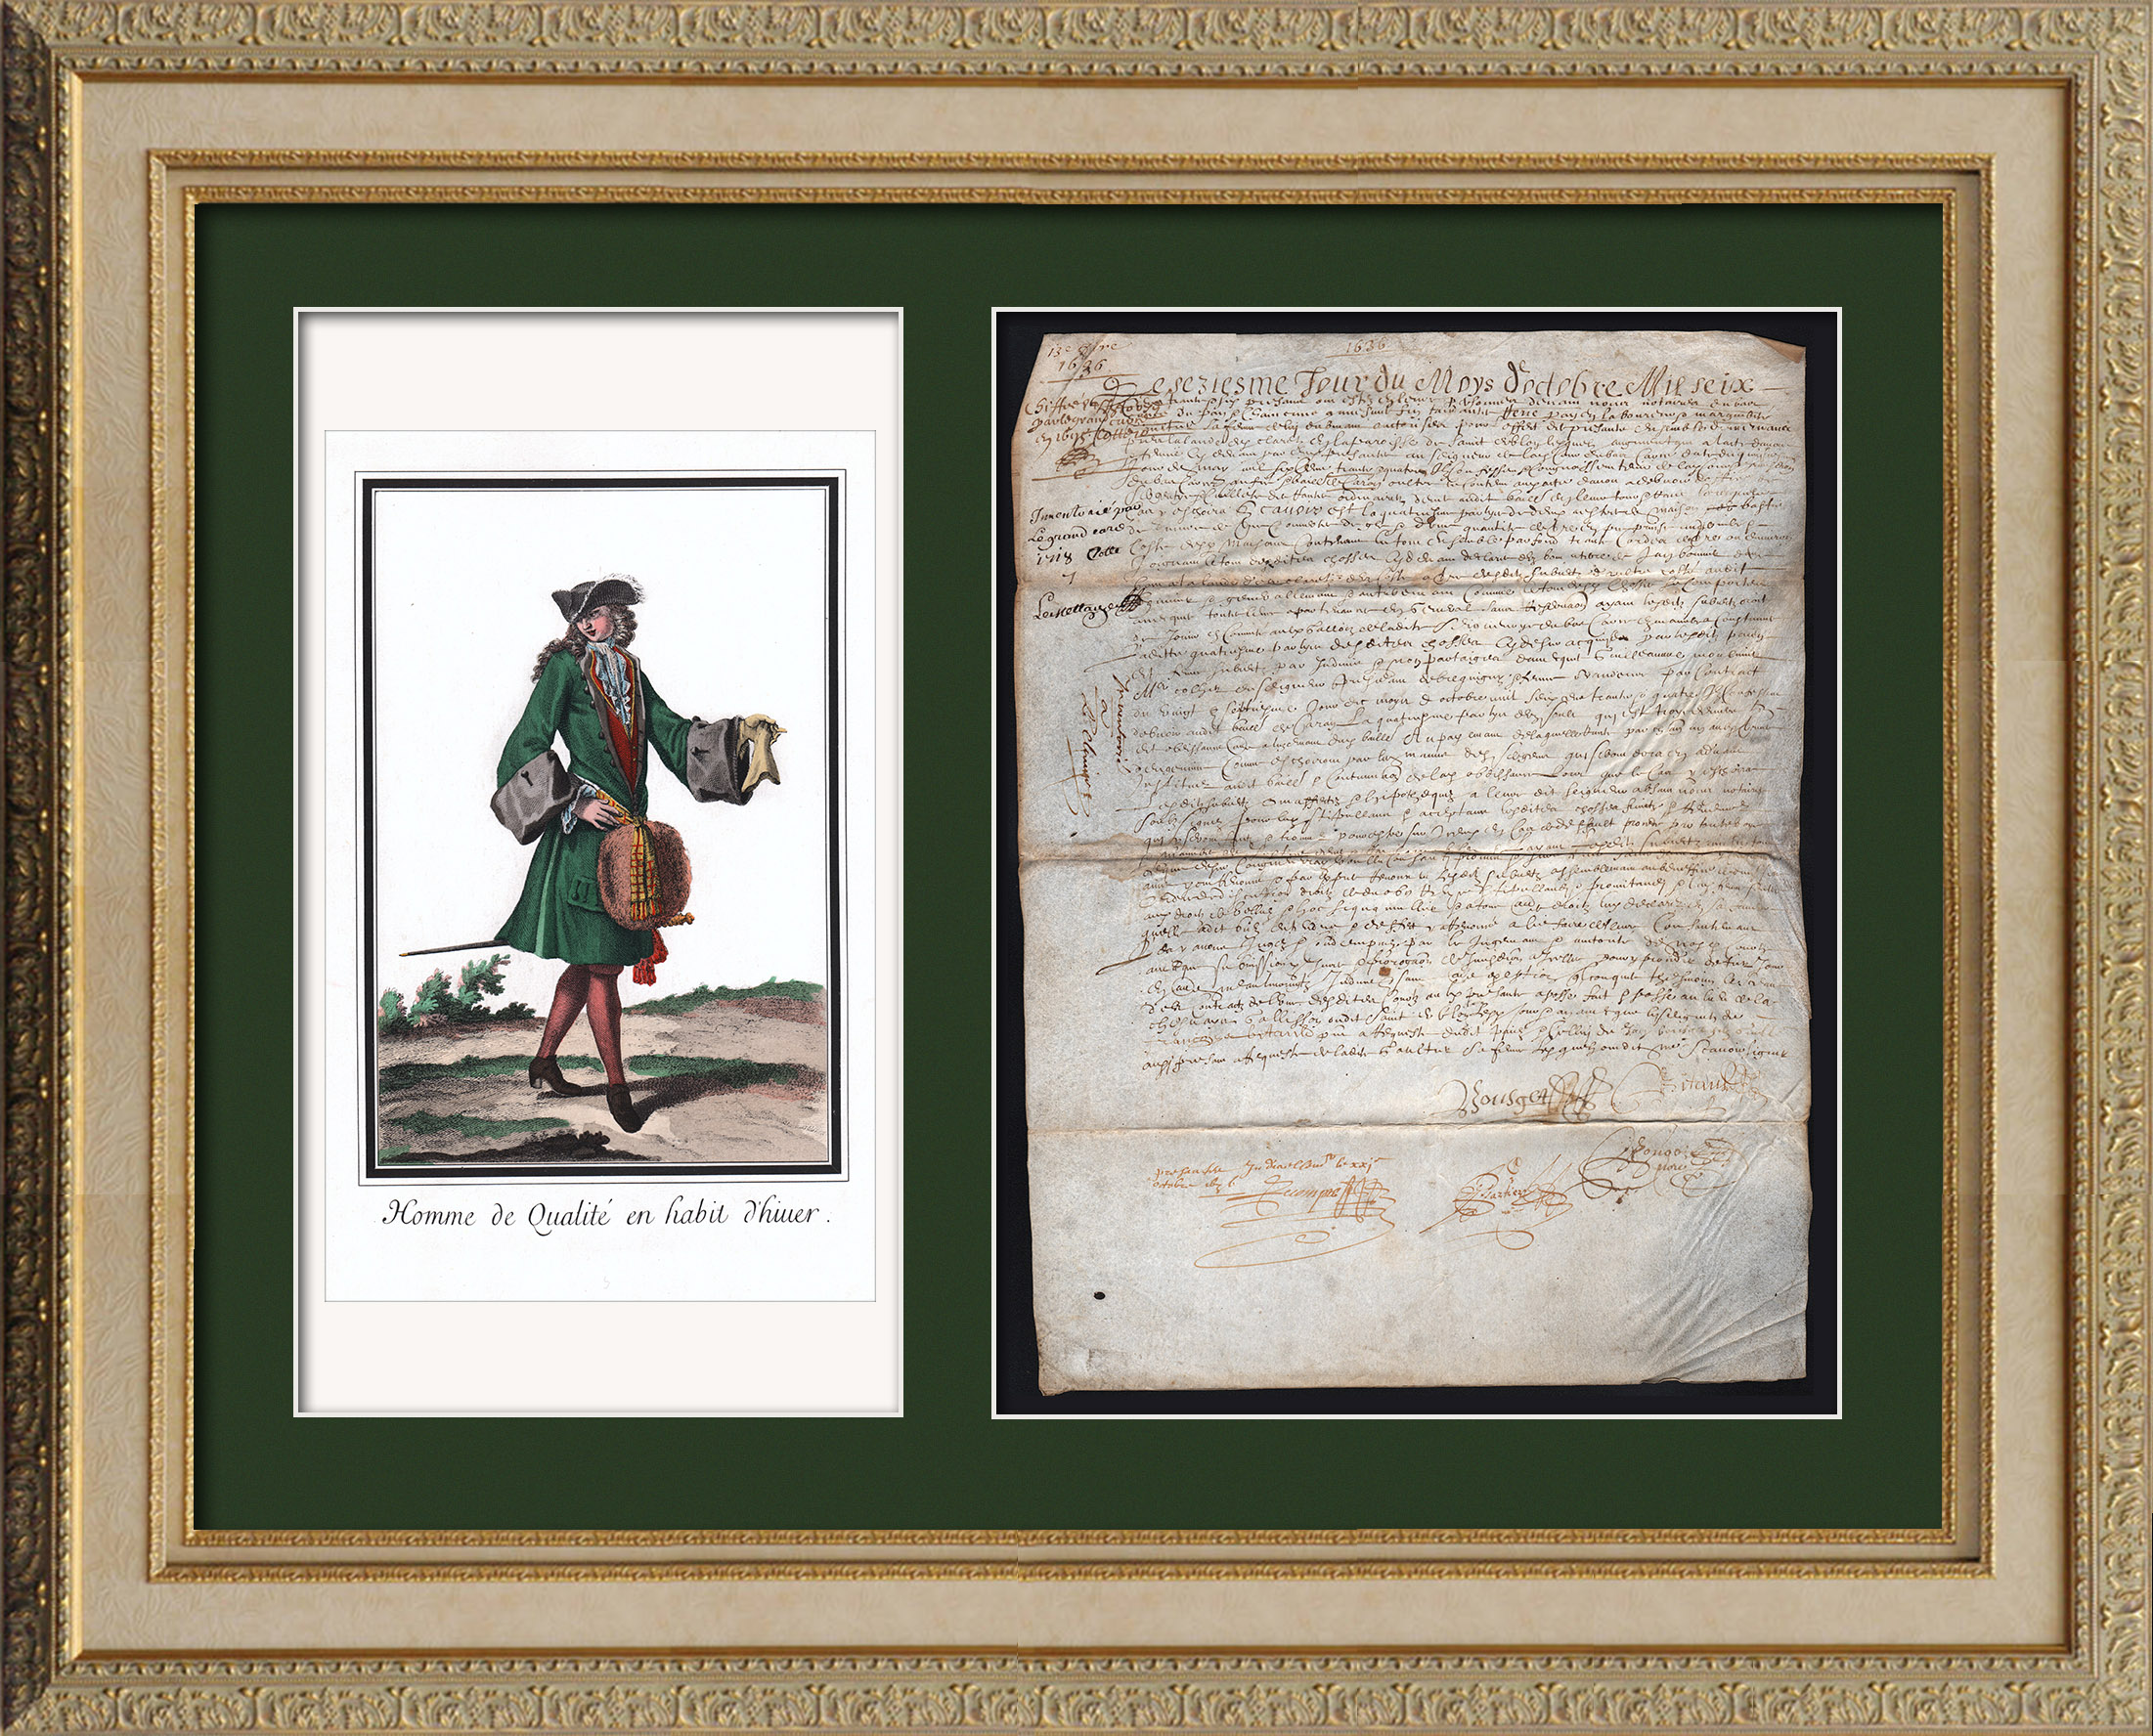 Historical Document on Parchment - Reign of Louis XIII of France - 1636 - France XVIIth Century   Historical handwritten document dated October 13th, 1636 and an original steel engraving after Robert Bonnart